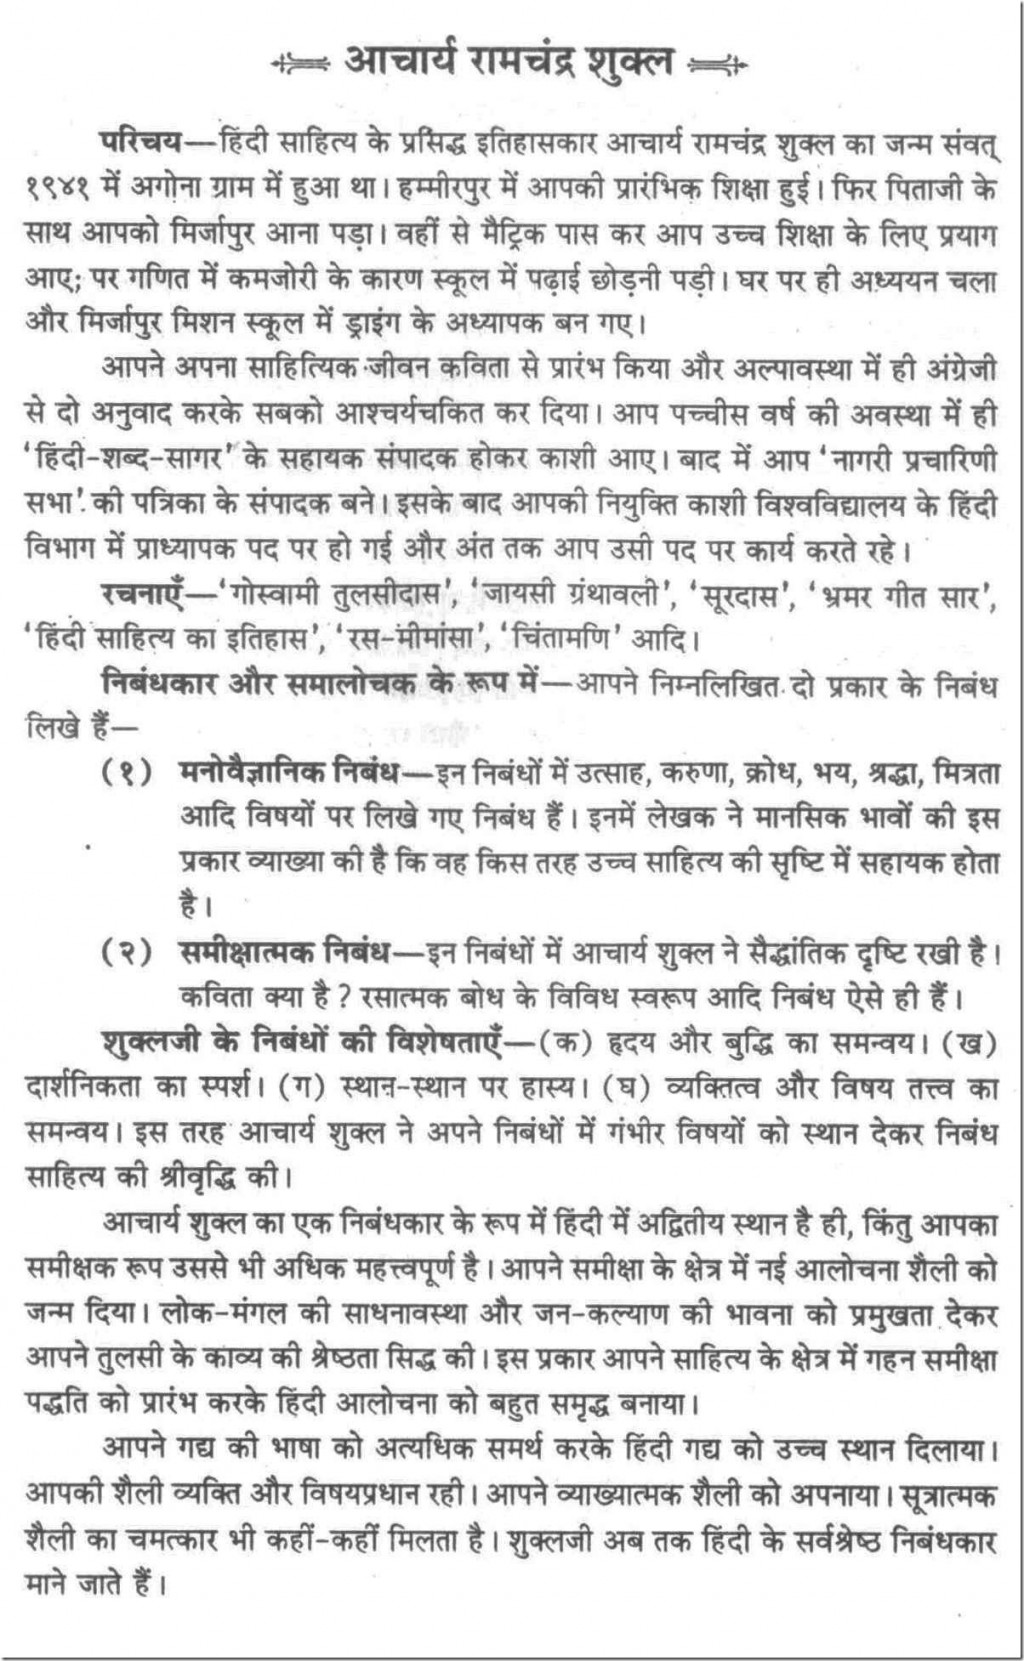 010 Essay On Helping Friend In Trouble 100018 Thumb Excellent A Narrative Hindi Large